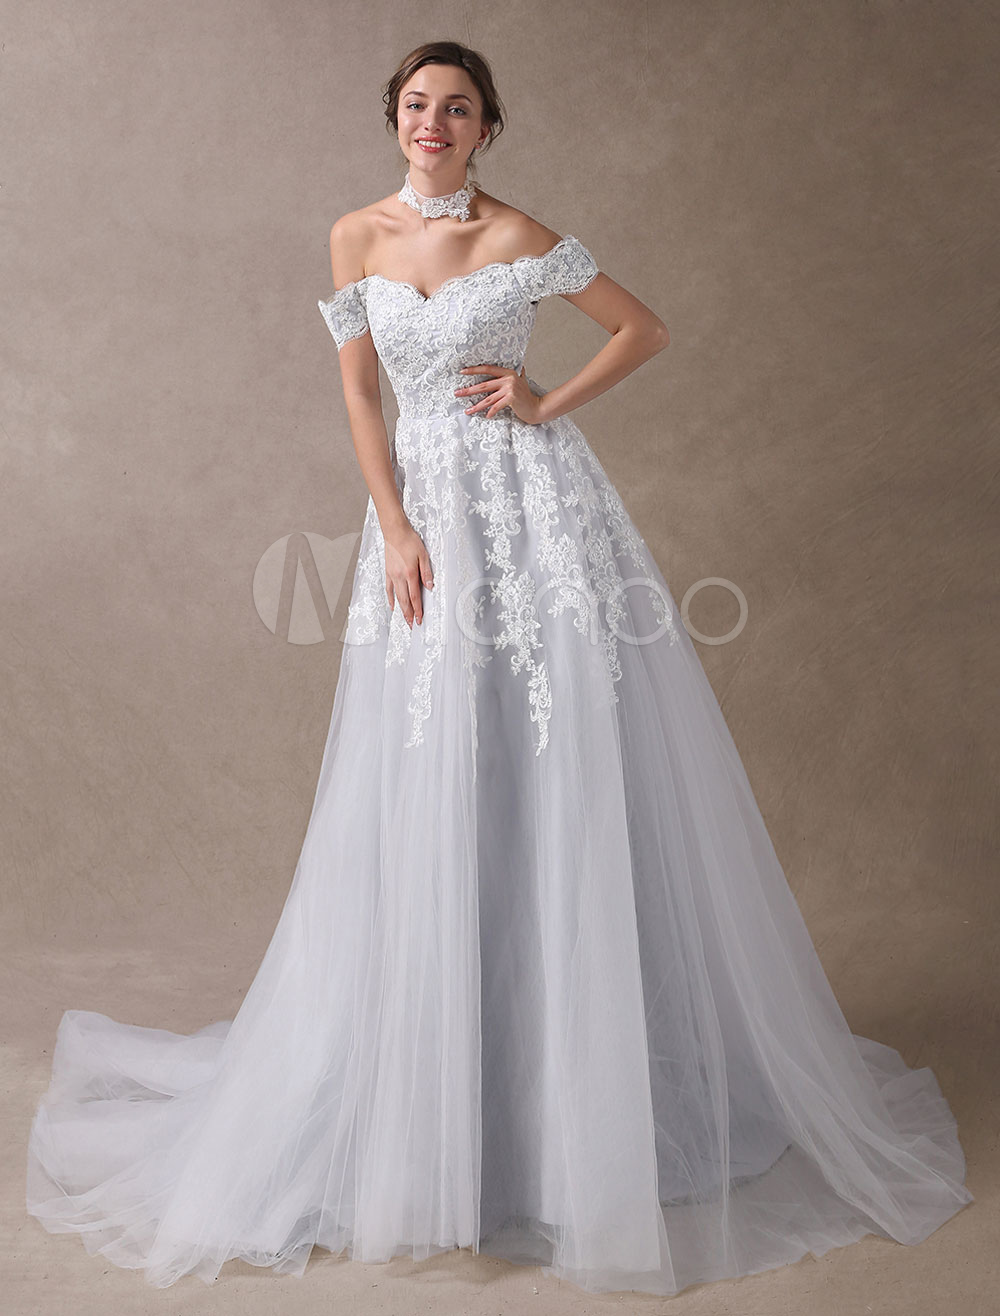 Colored wedding dresses off shoulder bridal dress choker lace colored wedding dresses off shoulder bridal dress choker lace applique tulle light grey wedding gowns with train milanoo junglespirit Image collections